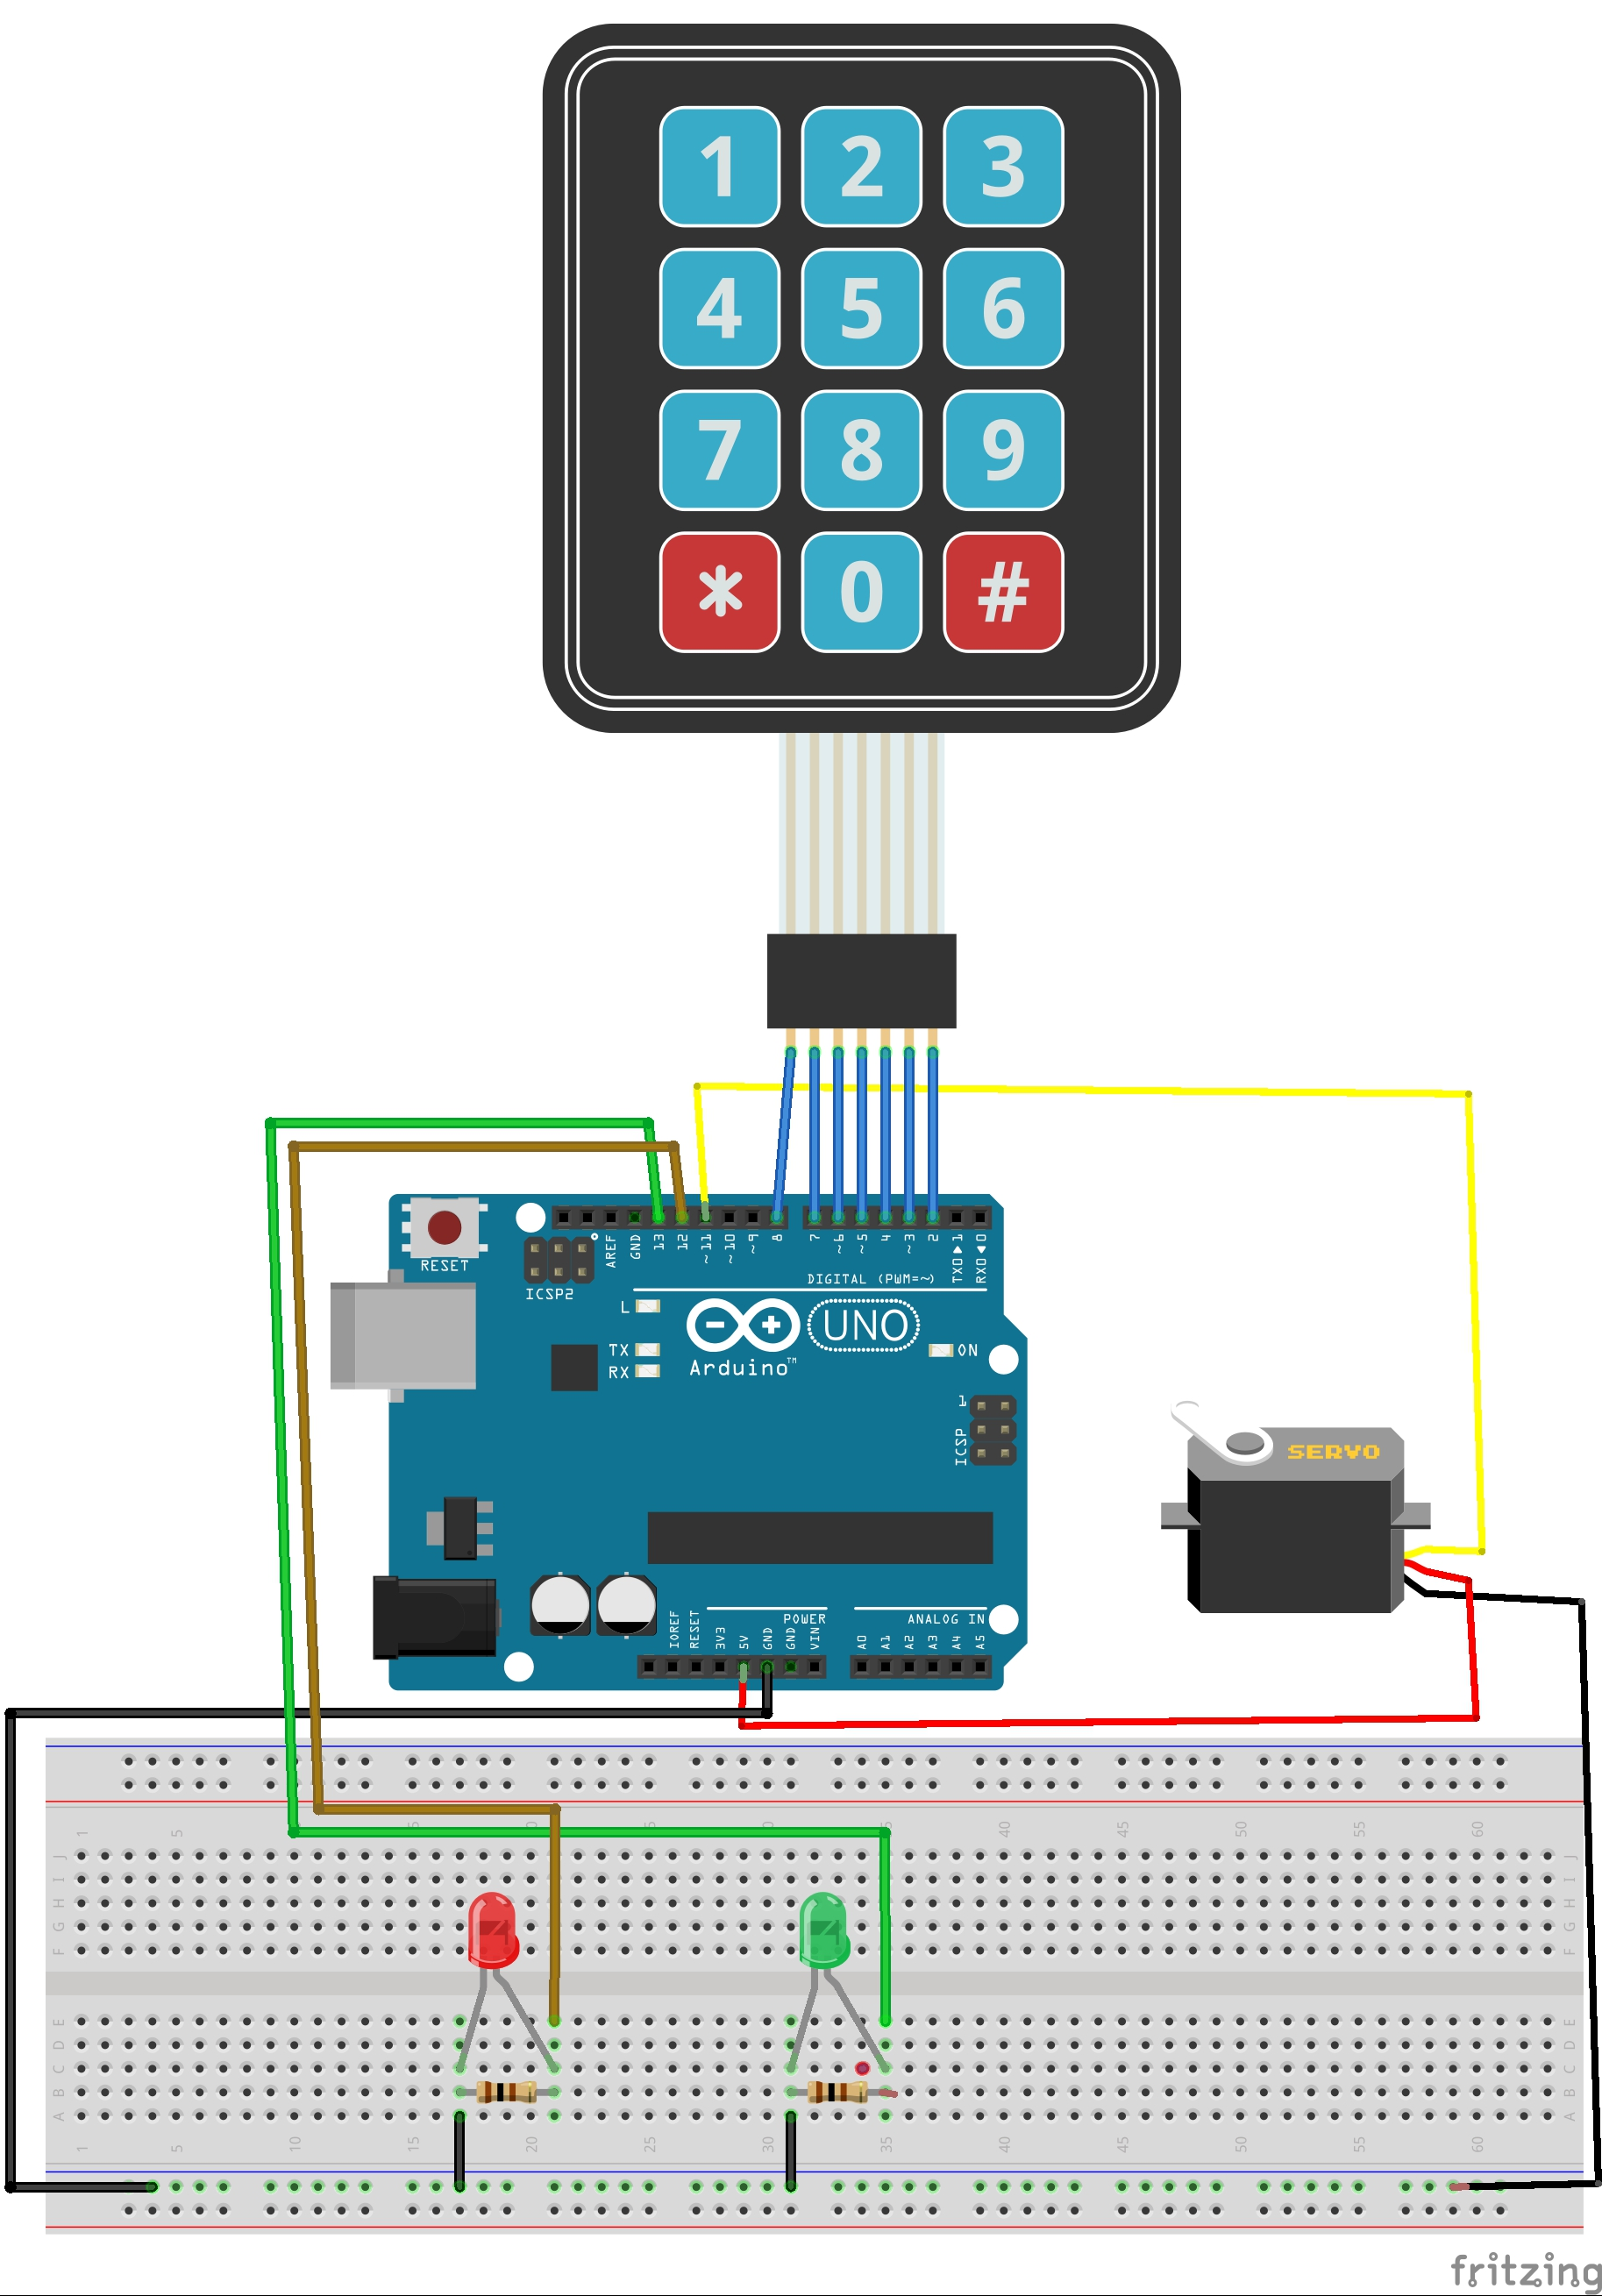 No keypad lock arduino tutorials and kits for